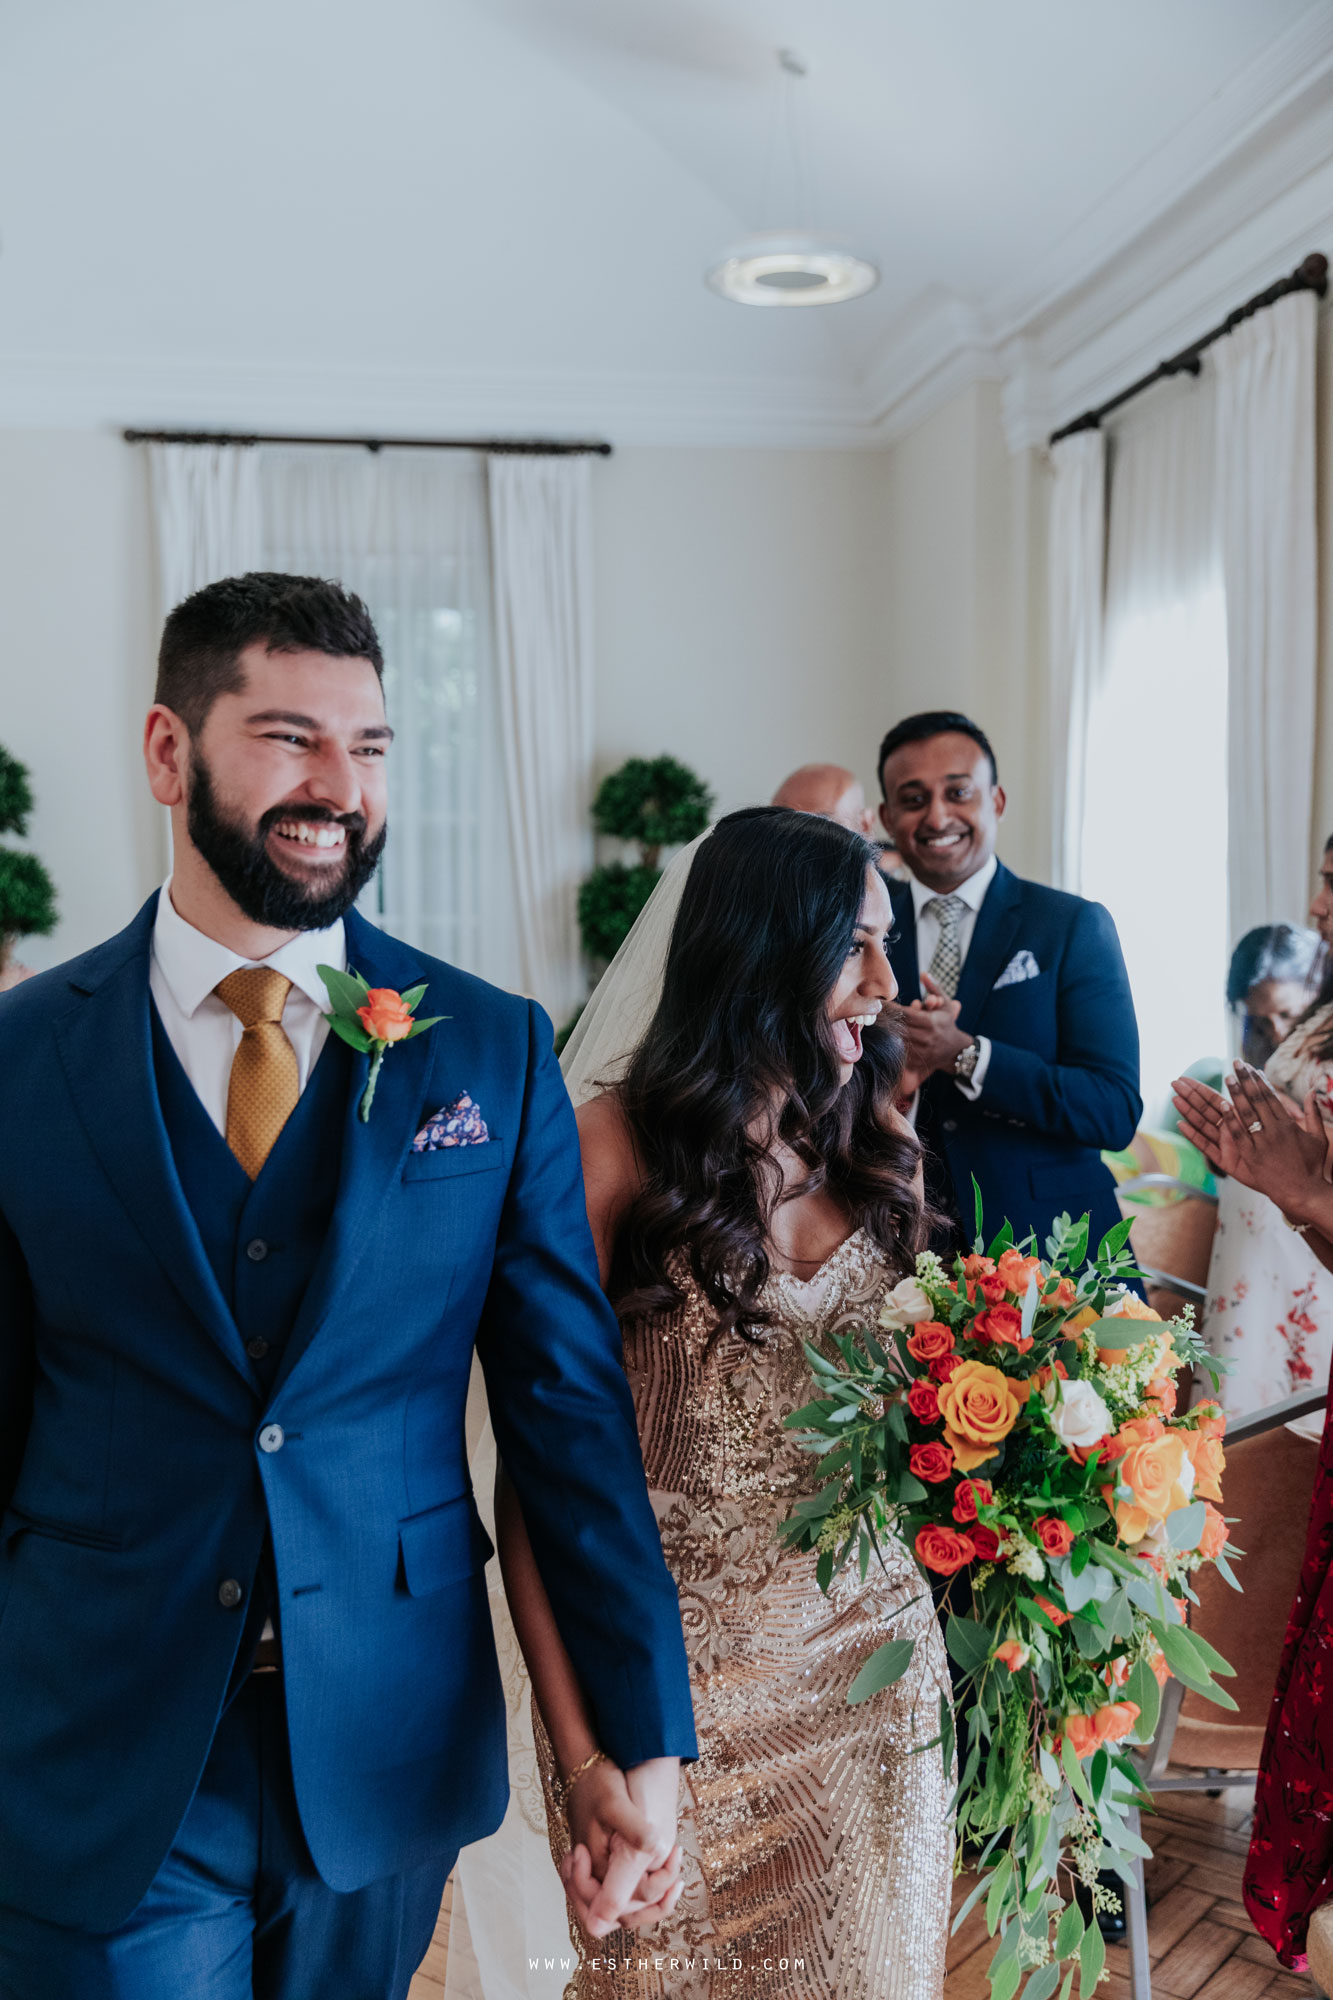 Twickenham_Registry_Office_London_Wedding_Ceremony_Esther_Wild_Photographer_IMG_0553.jpg